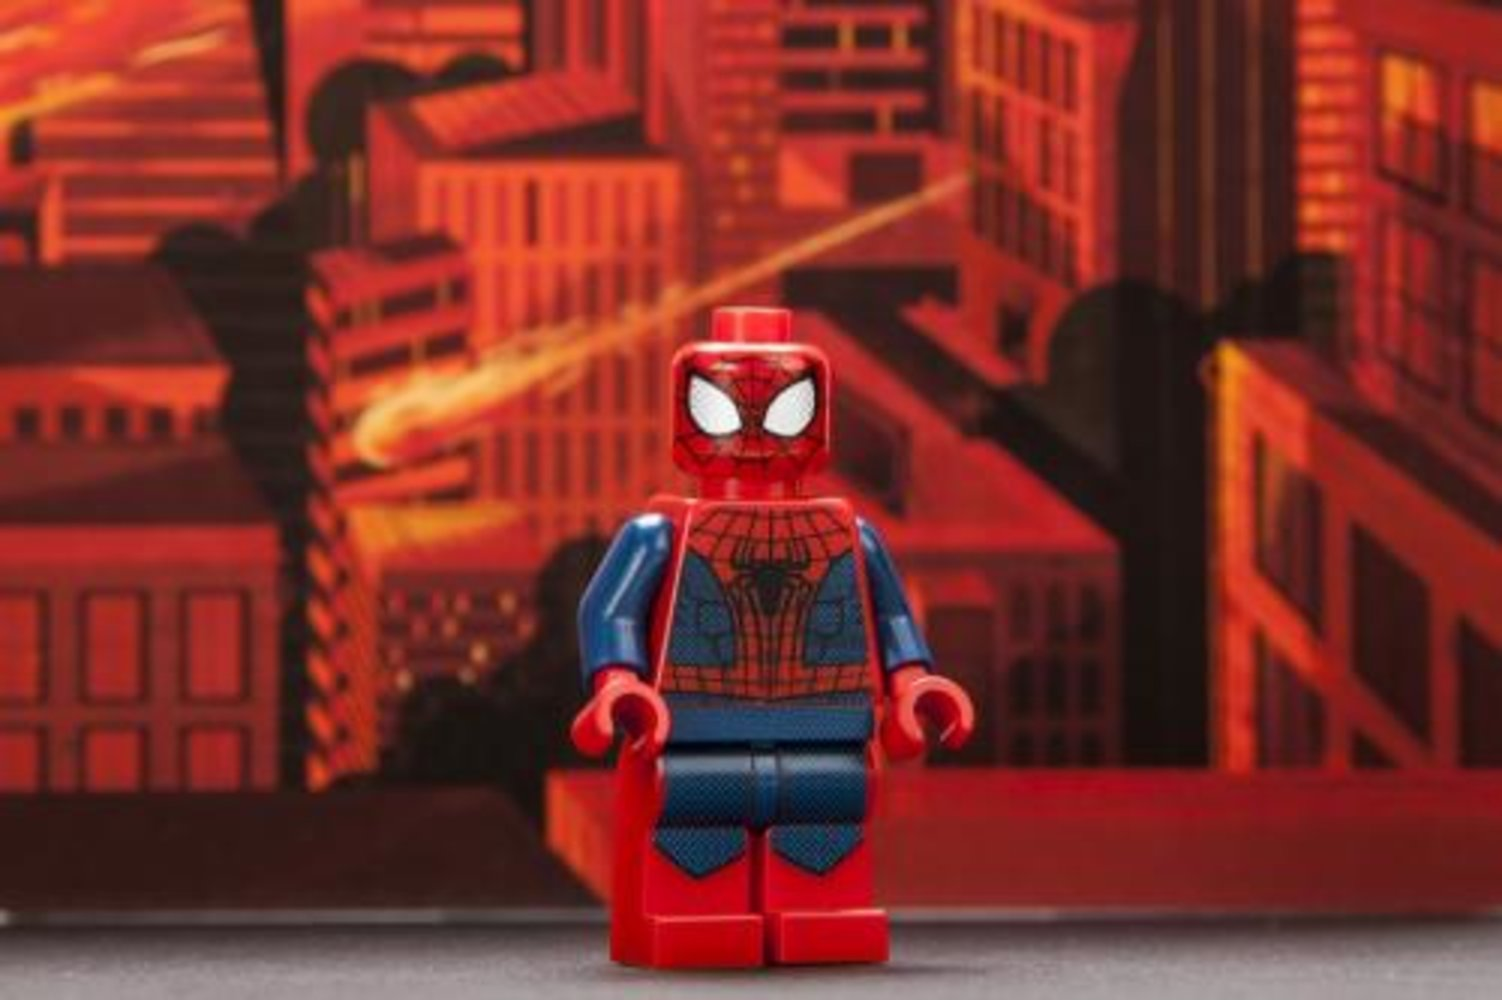 Spider-Man - San Diego Comic-Con 2013 Exclusive